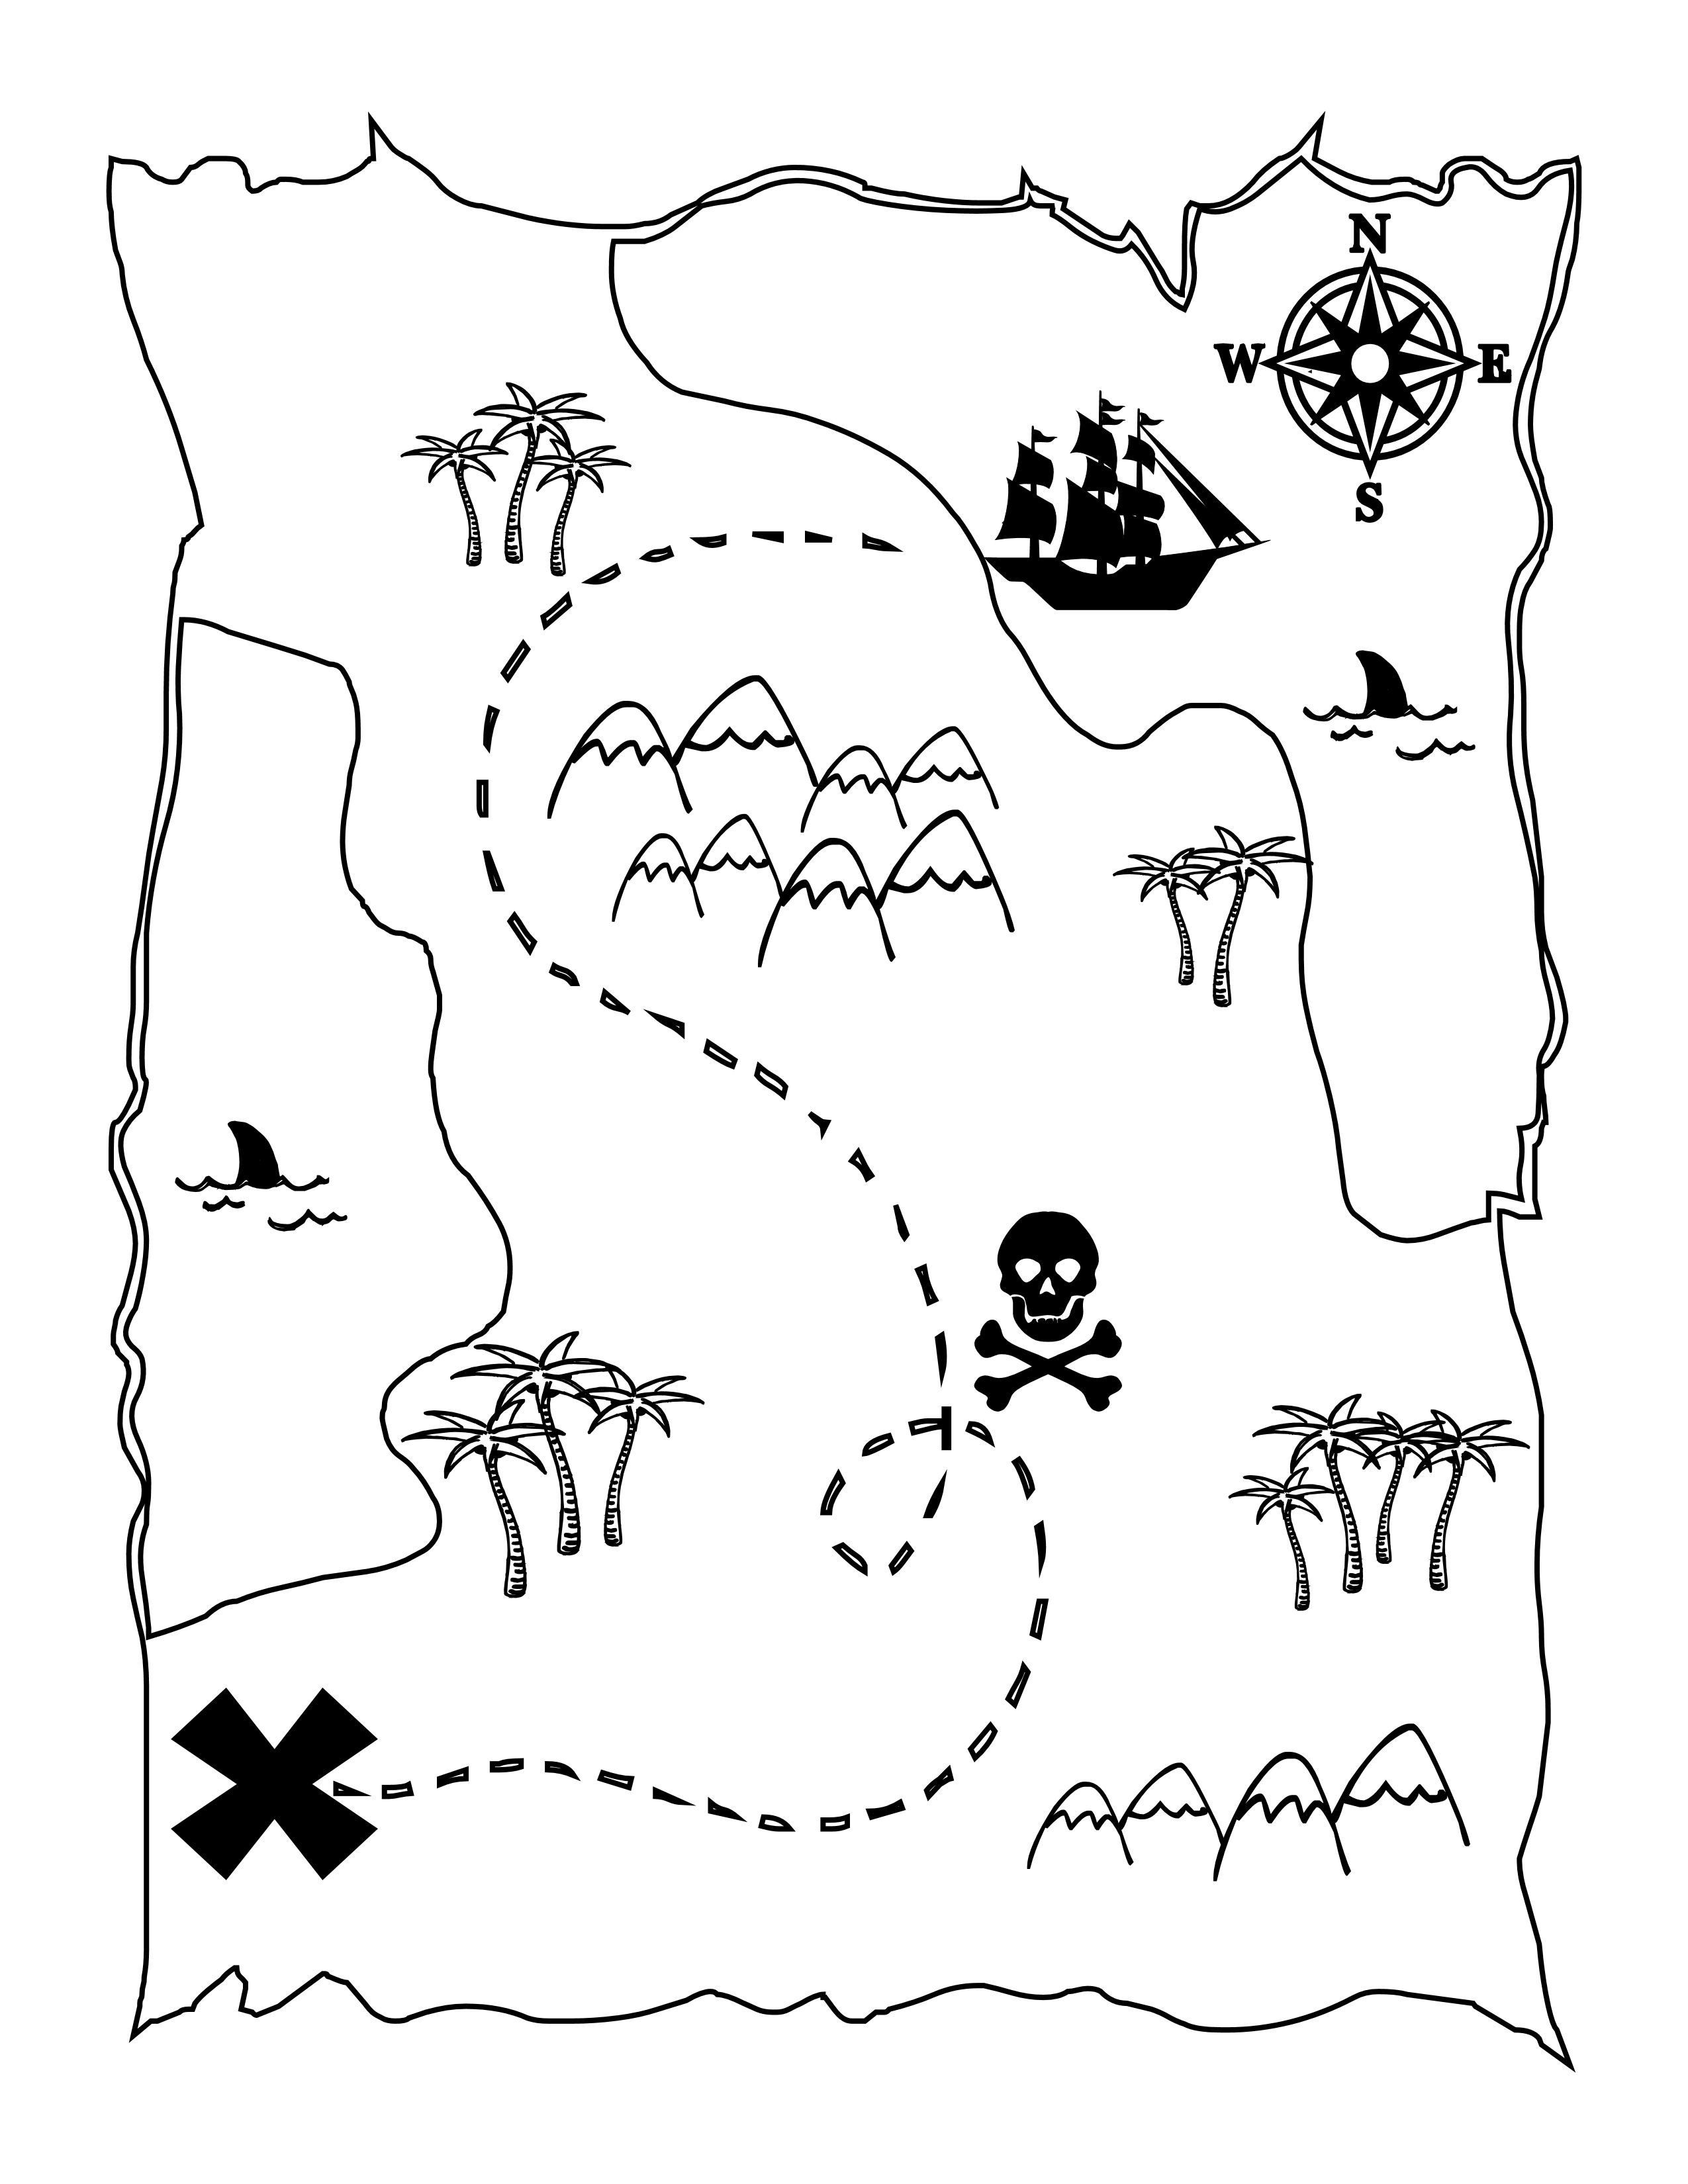 2550x3300 Blank Drawings For Colouring Refrence Free Printable Pirate Map